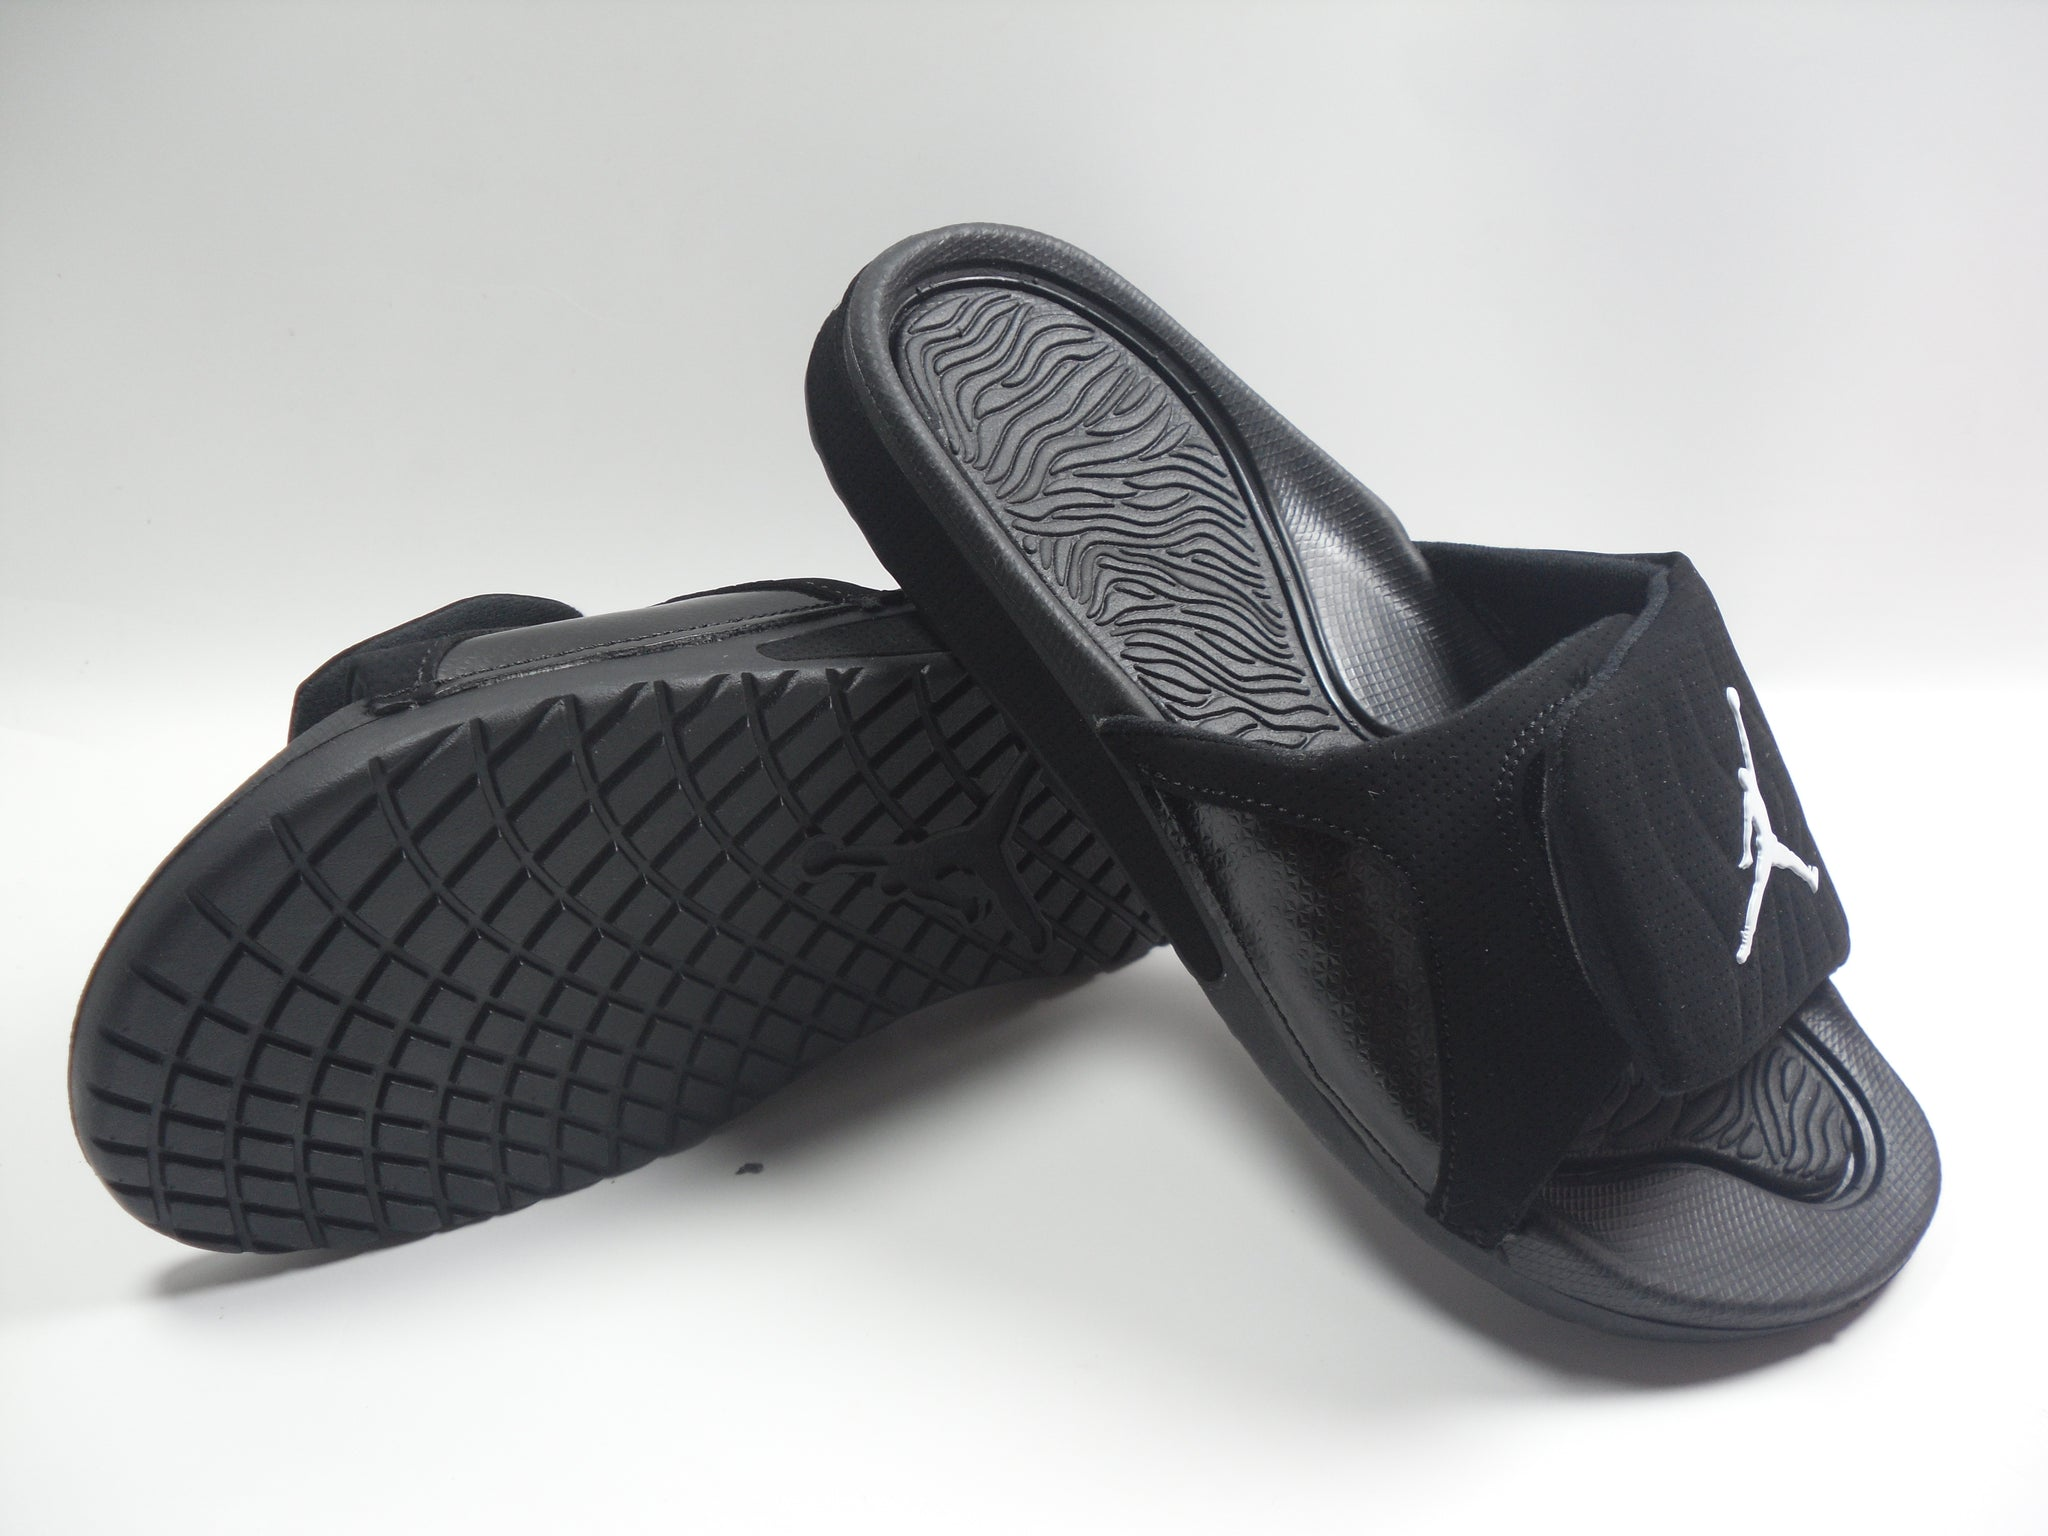 91f0d916828f Nike Jordan Slippers Black - Shoes is my passion